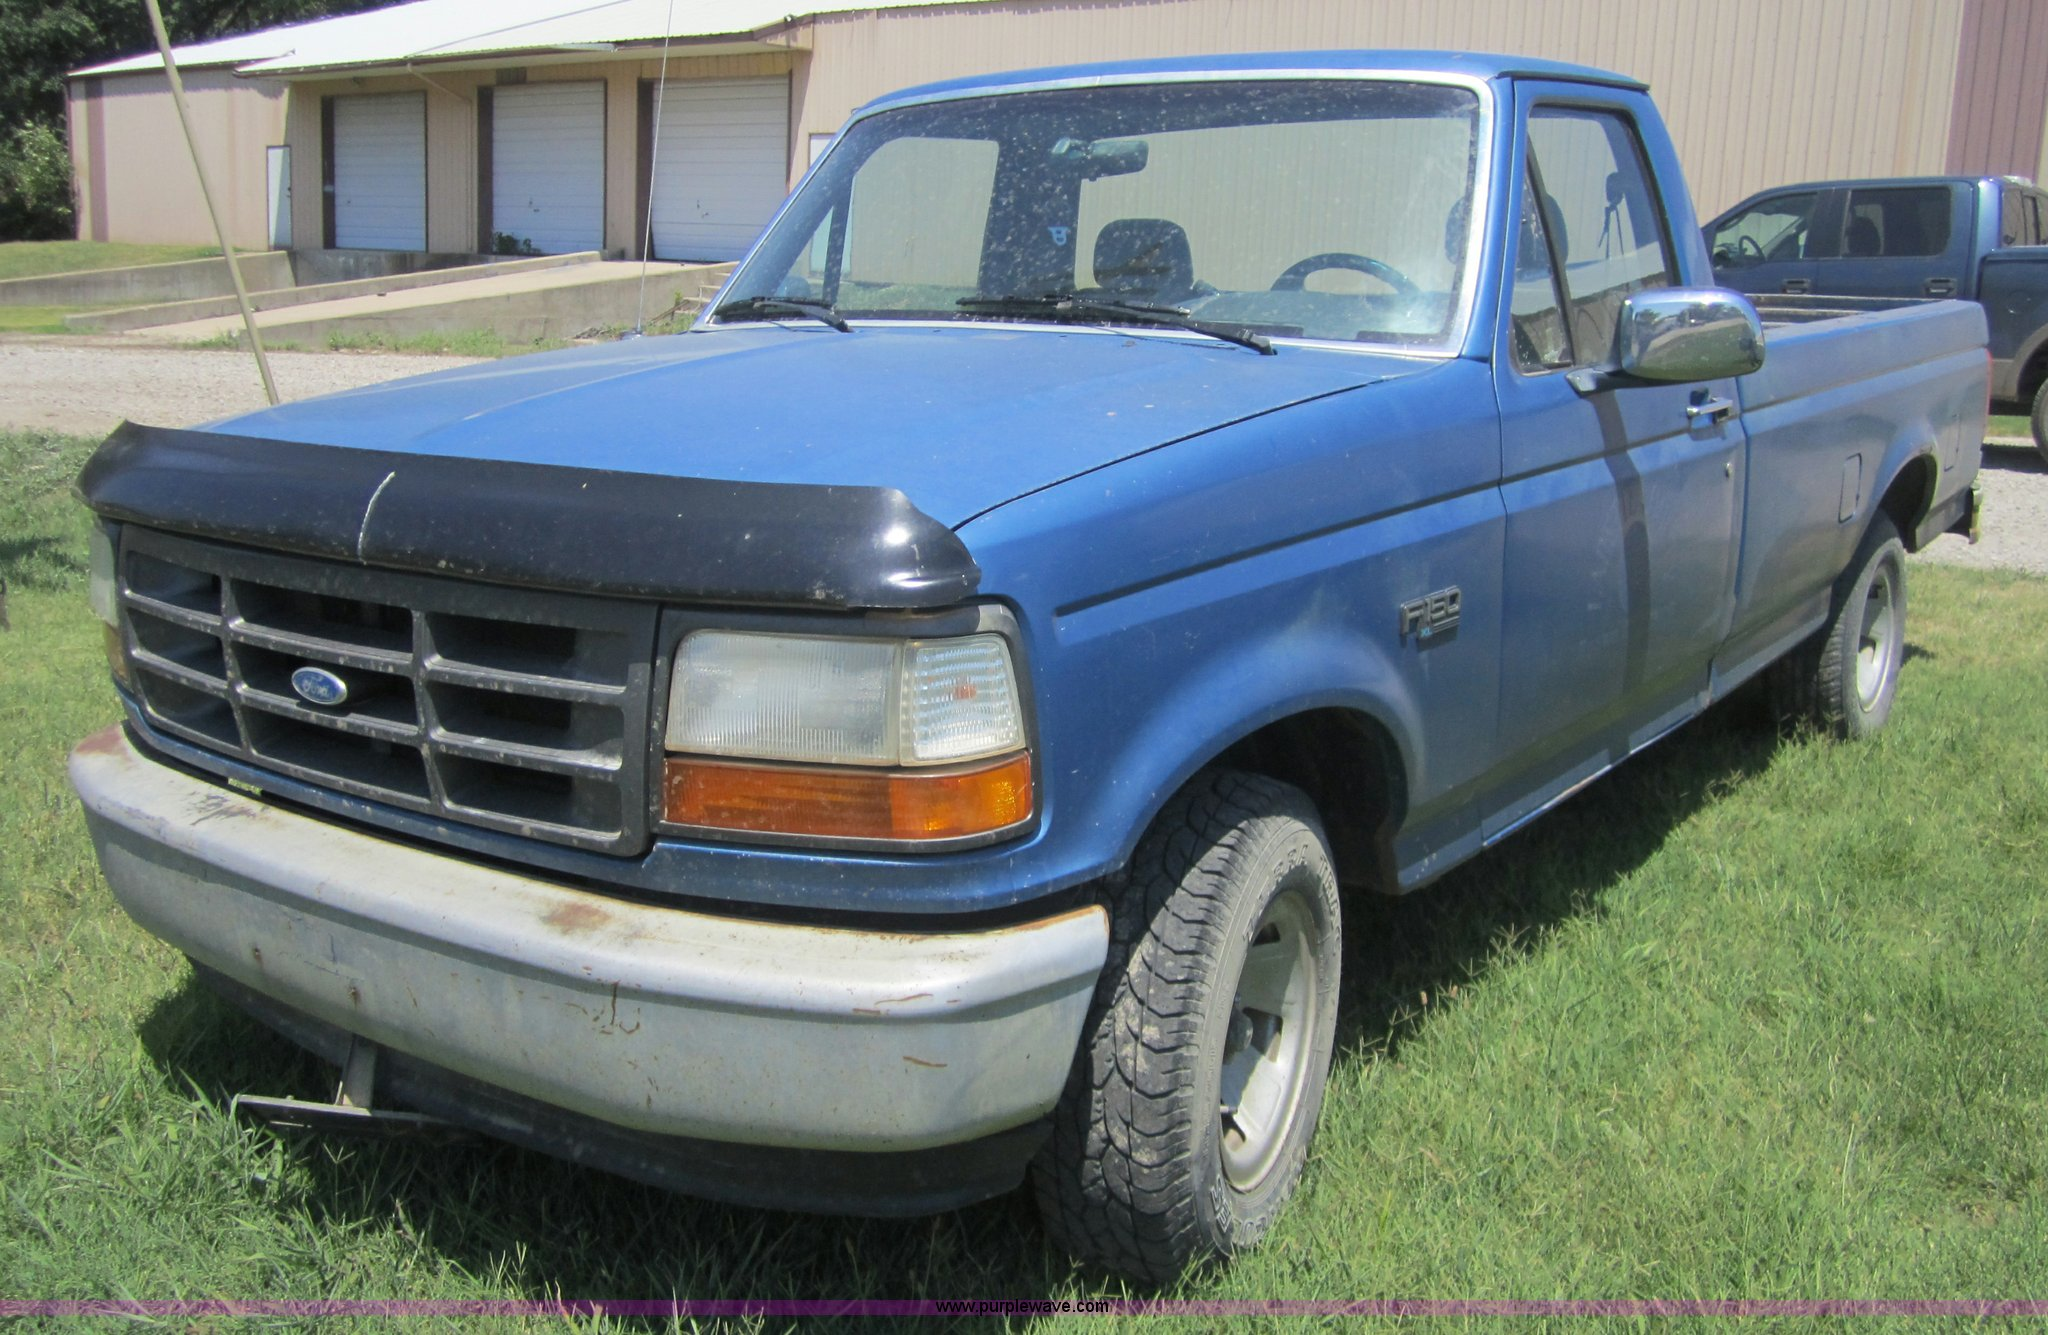 A4760 image for item a4760 1993 ford f150